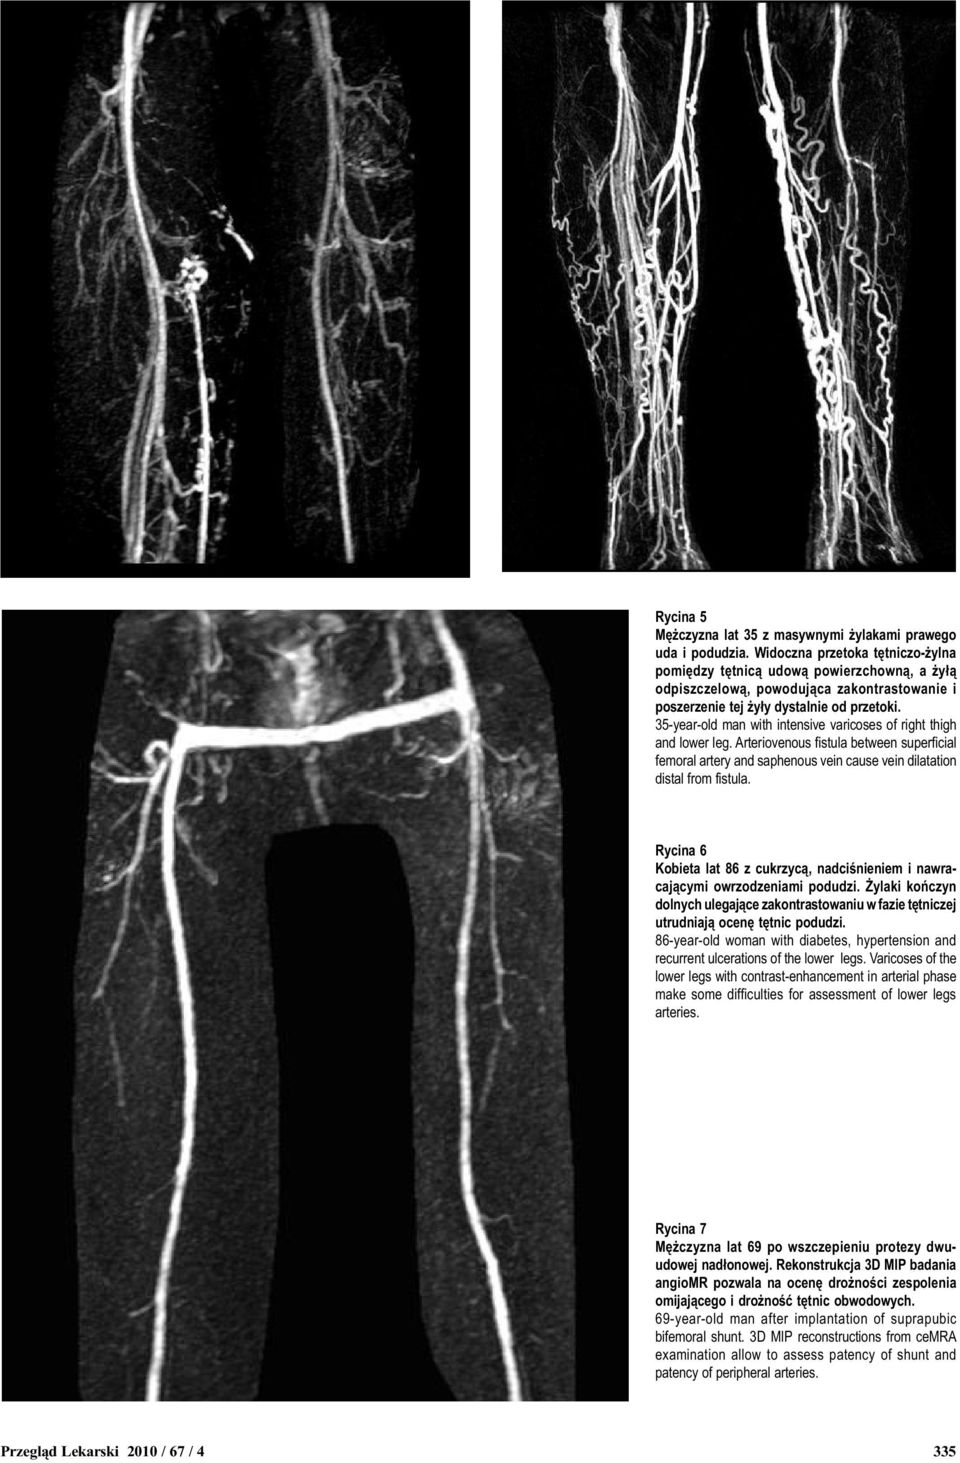 35-year-old man with intensive varicoses of right thigh and lower leg. Arteriovenous fistula between superficial femoral artery and saphenous vein cause vein dilatation distal from fistula.